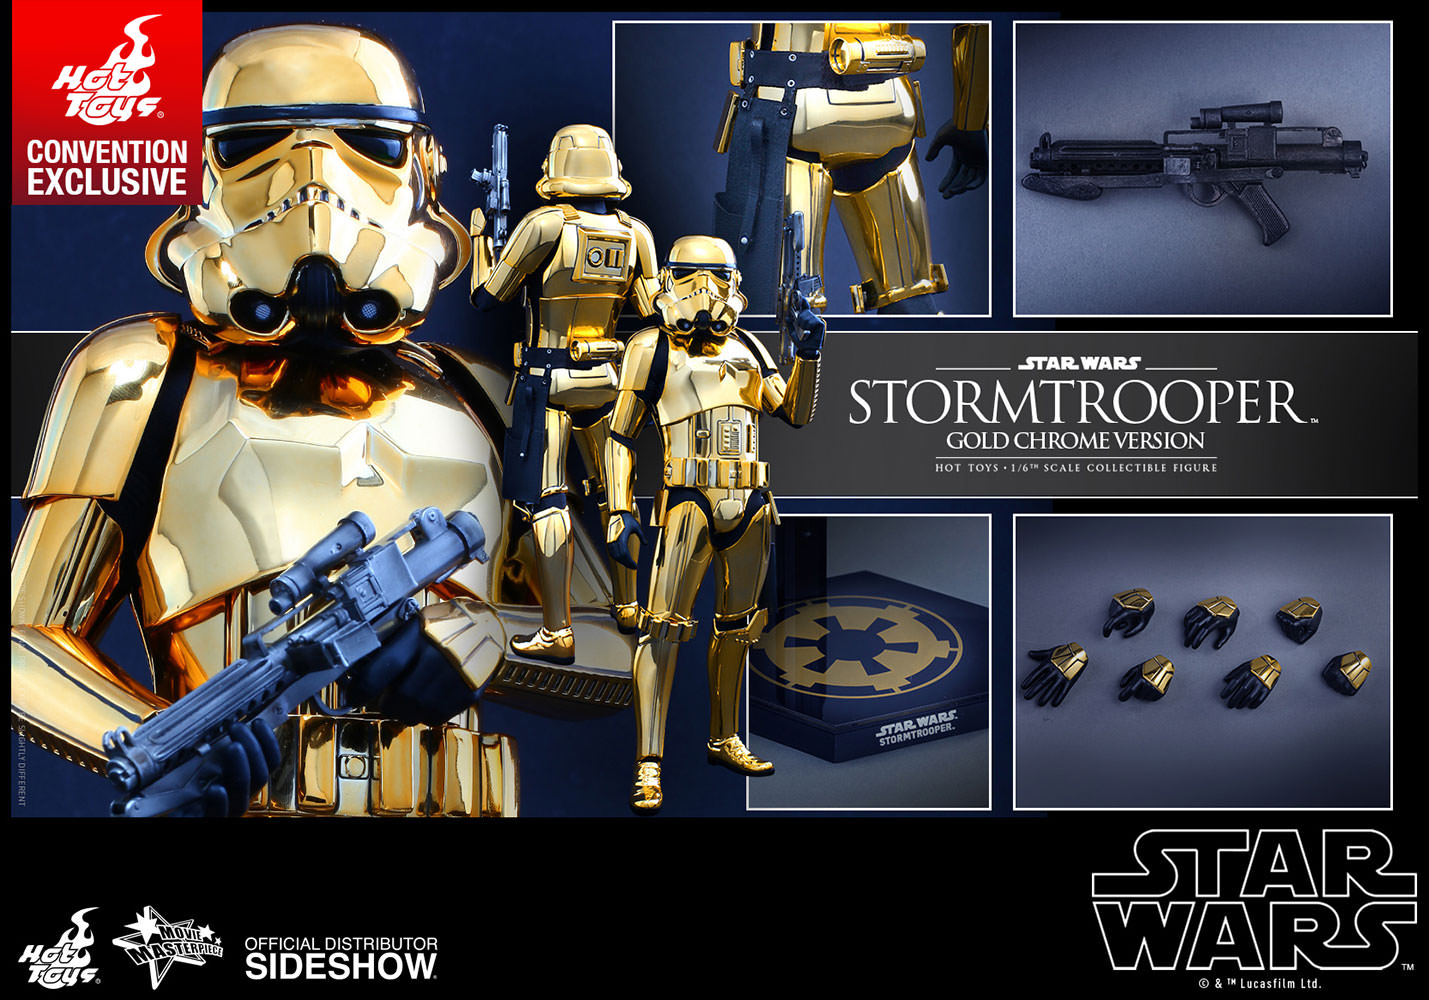 star-wars-stormtrooper-gold-chrome-version-sixth-scale-902699-08